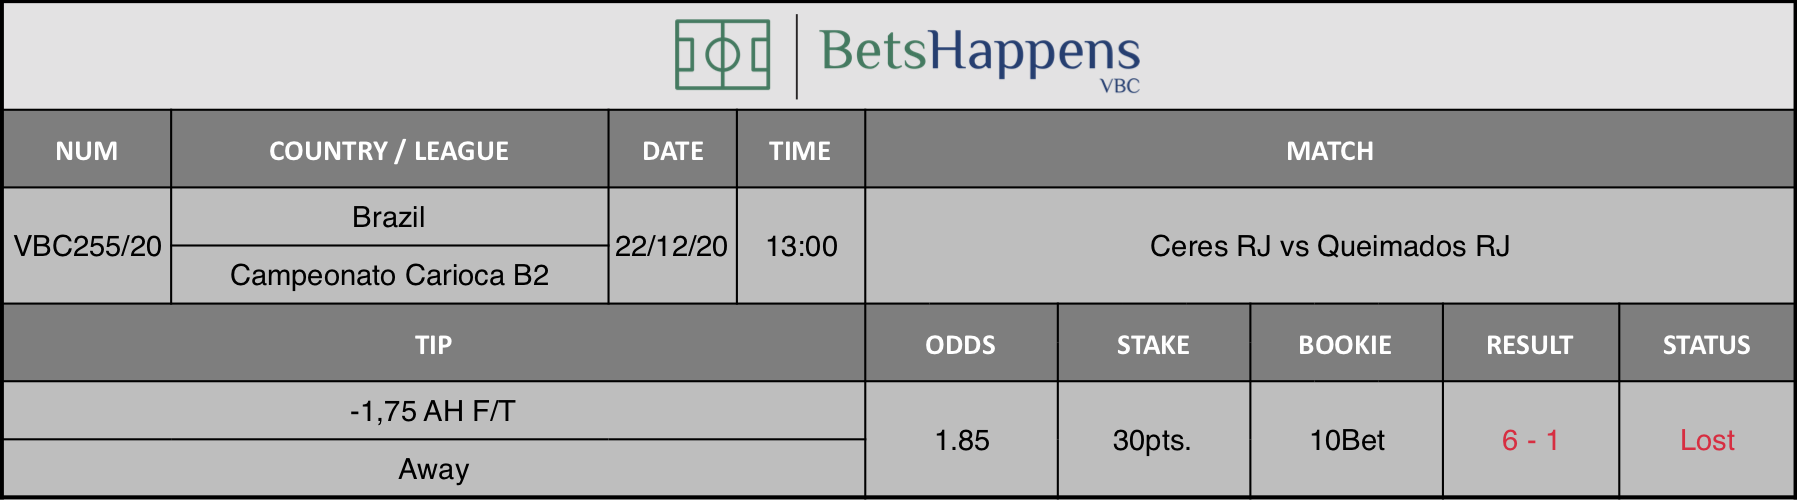 Results of our tip for the Ceres RJ vs Queimados RJ match where -1,75 AH F/T Away is recommended.